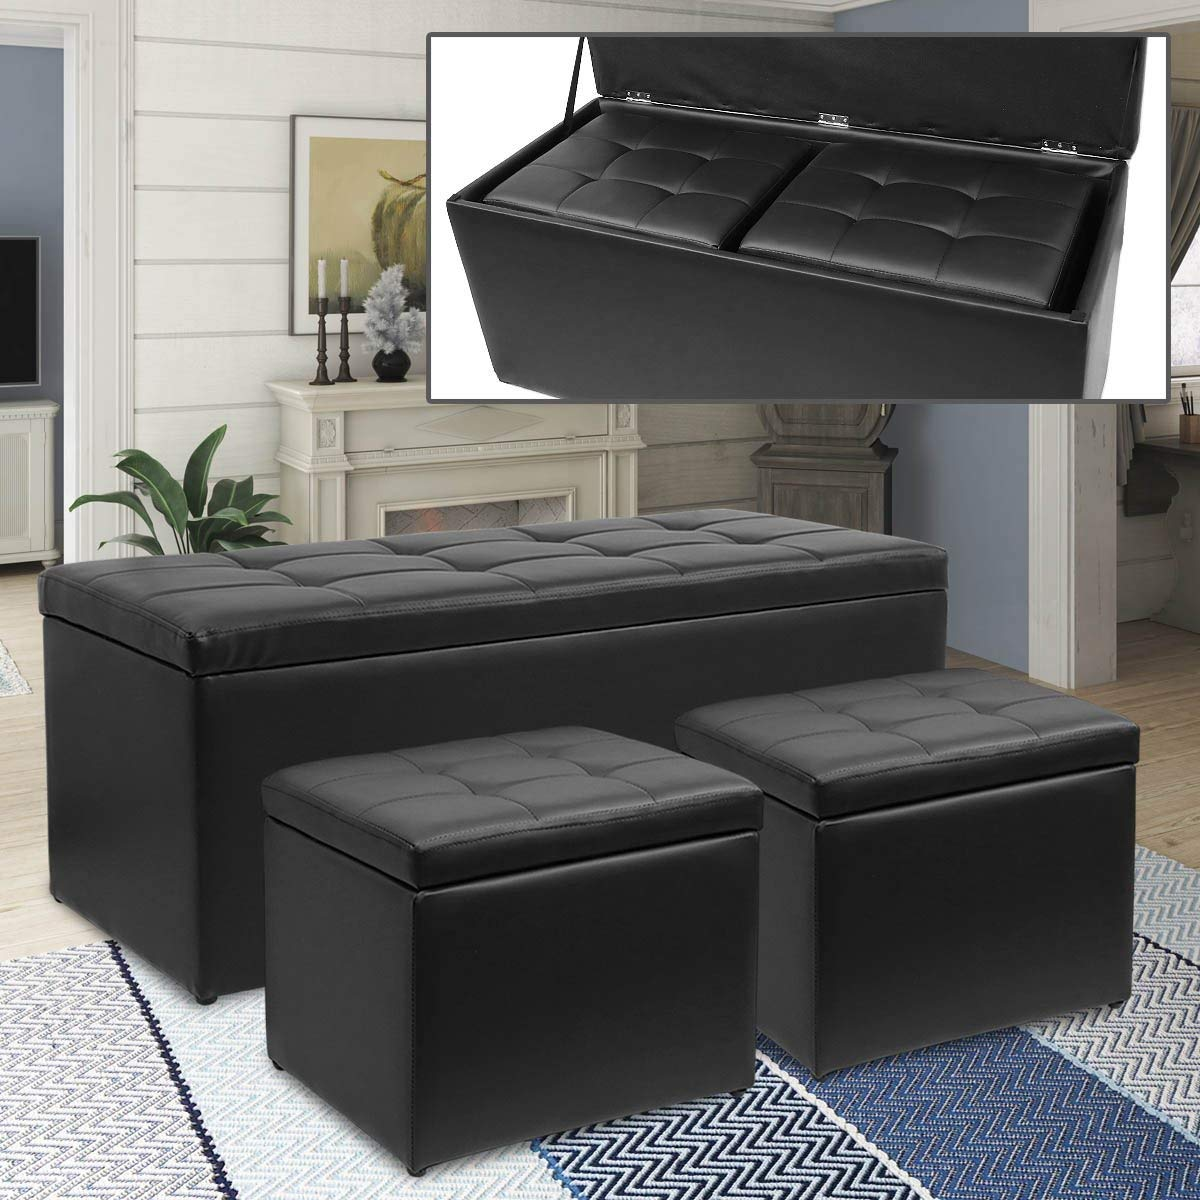 Rectangular PU Leather Storage Ottoman Bench Tufted Footrest with Cube Ottomans Set of 3